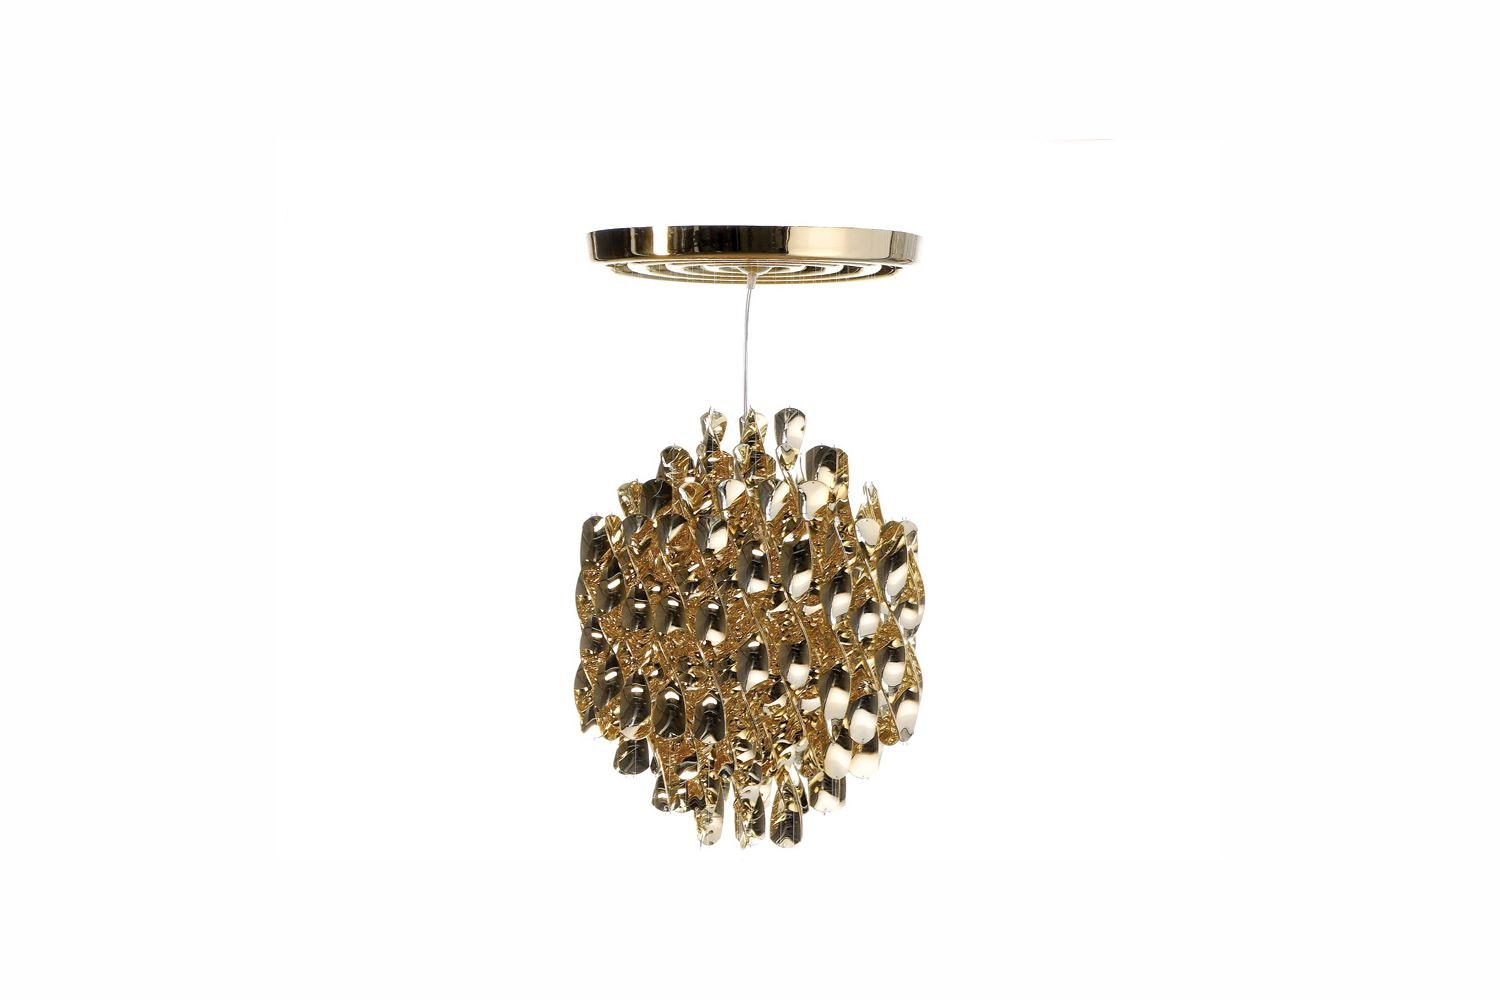 Spiral Small Suspension Lamp in Gold by Verner Panton for Verpan